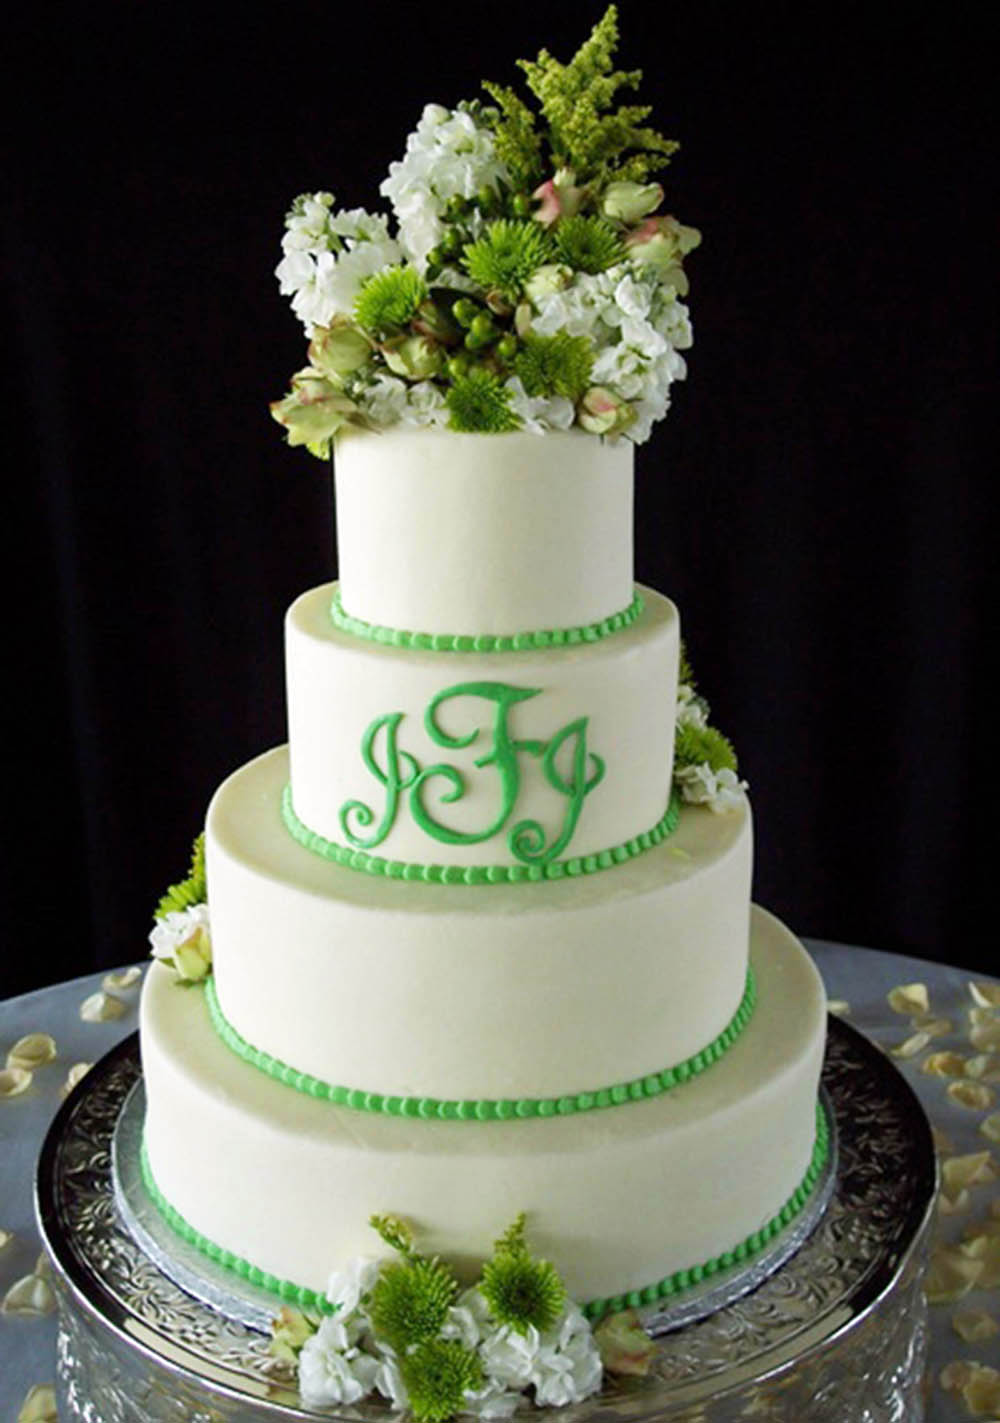 eye candy green wedding cakes reception project wedding forums. Black Bedroom Furniture Sets. Home Design Ideas